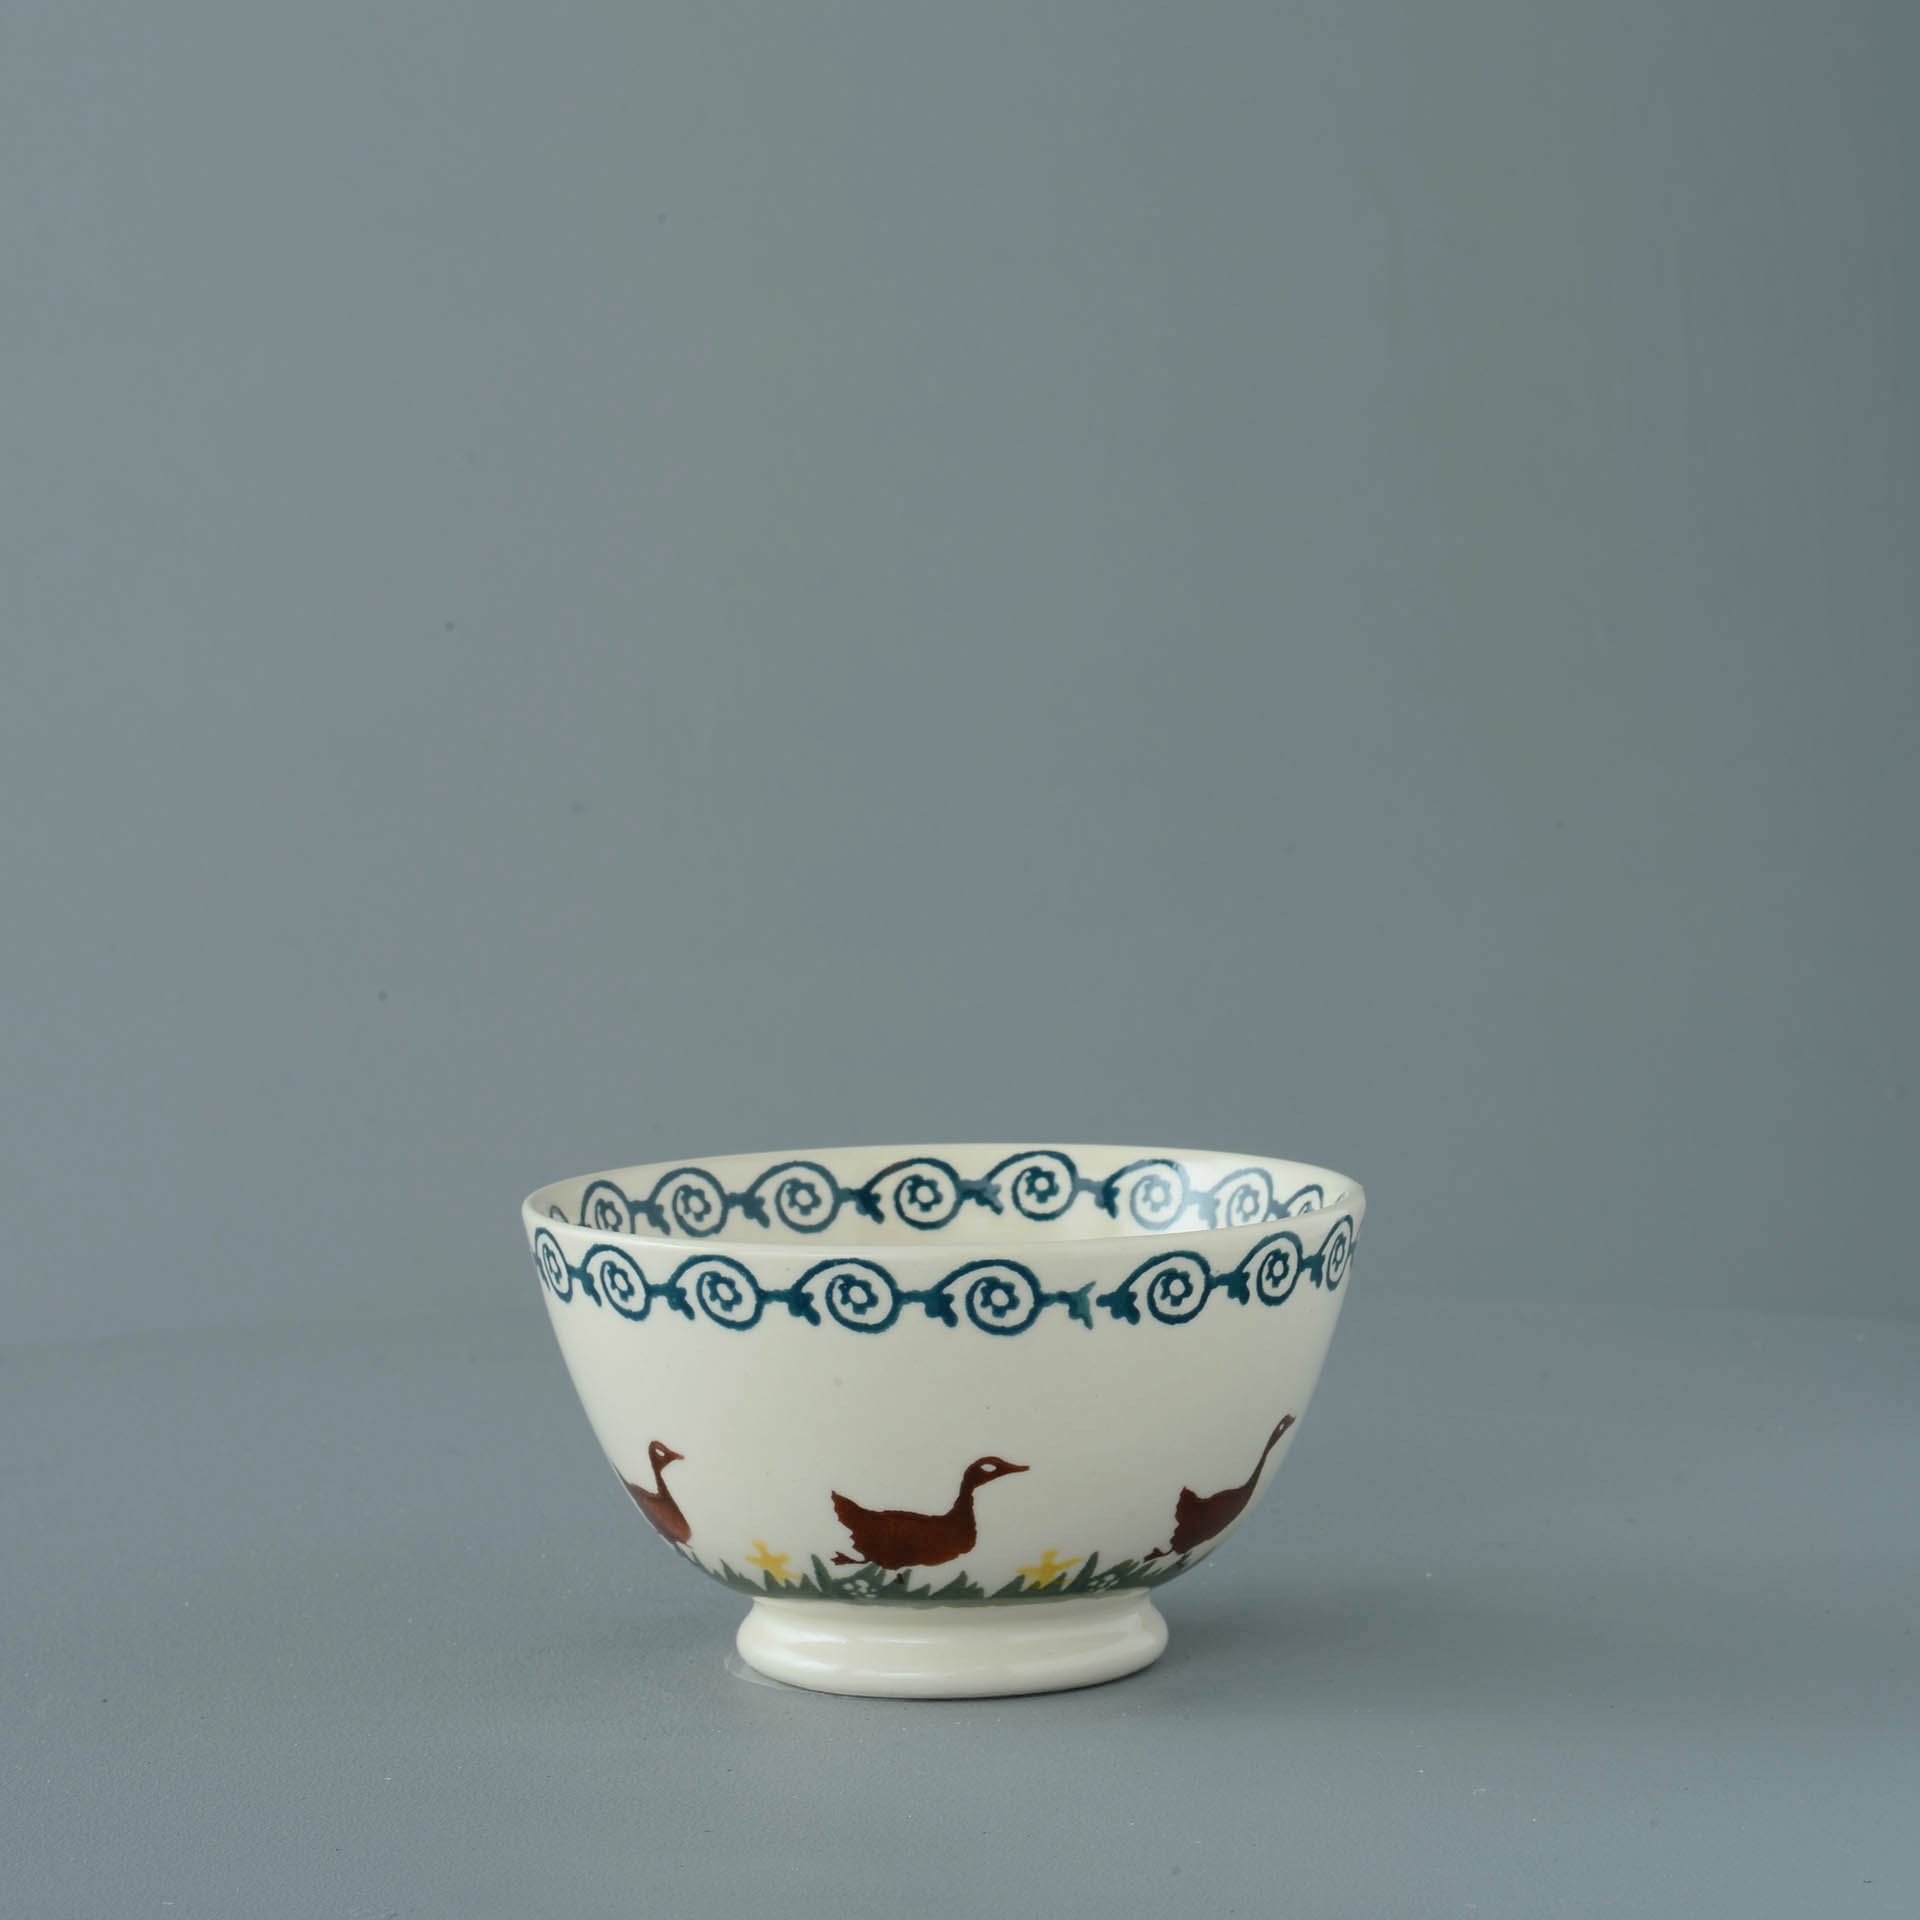 Ducks Small Bowl 6.5 x 12 cm